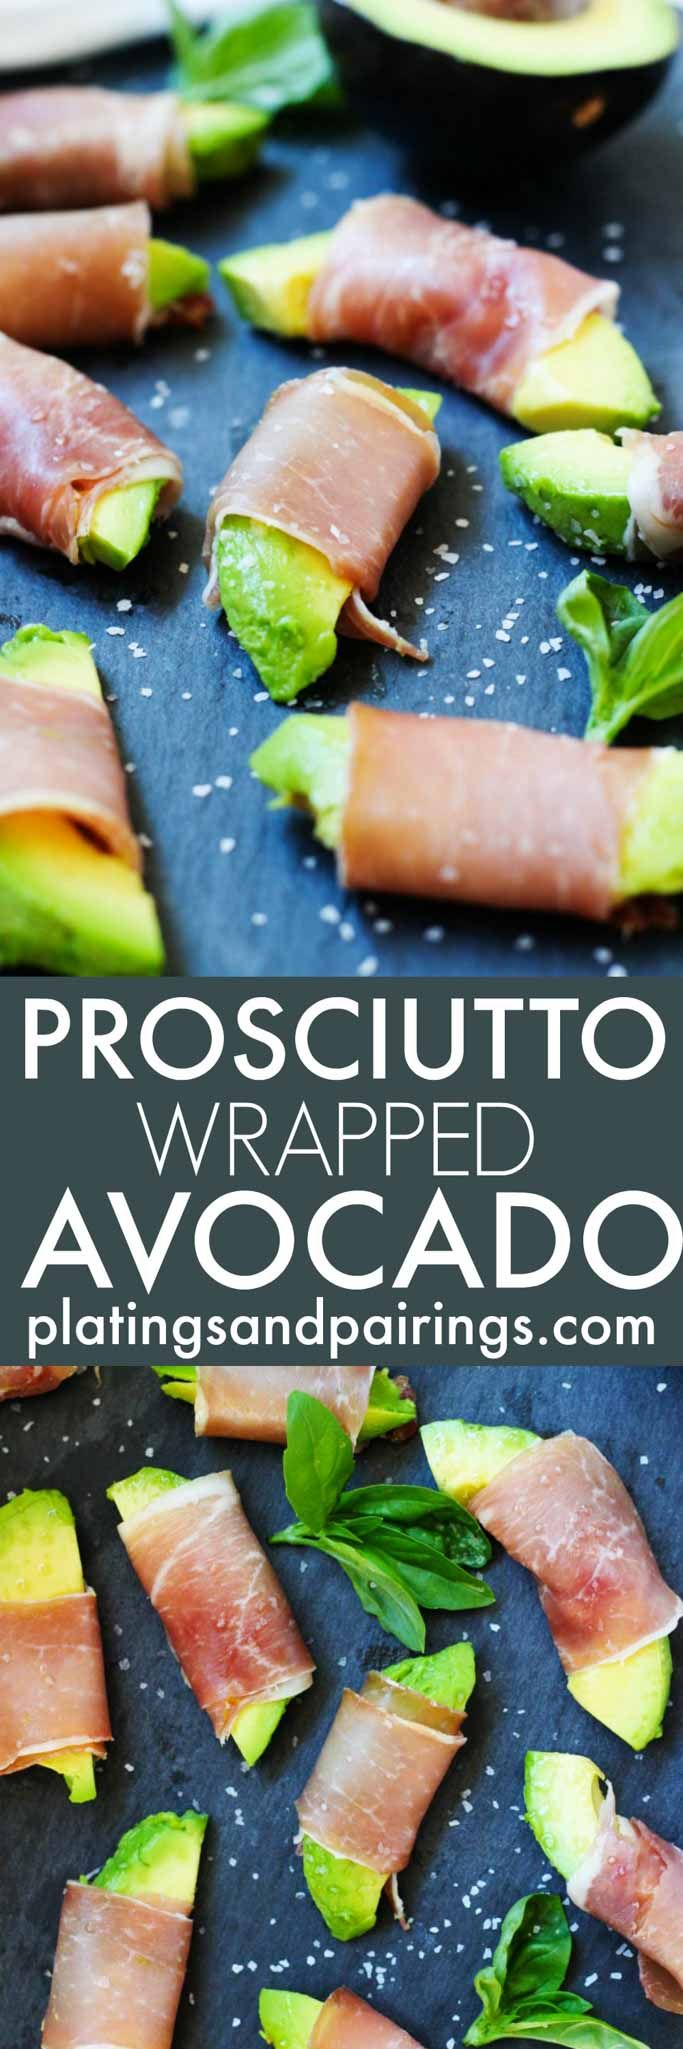 Prosciutto Wrapped Avocado Bites are the perfect party appetizer - It's easy to…